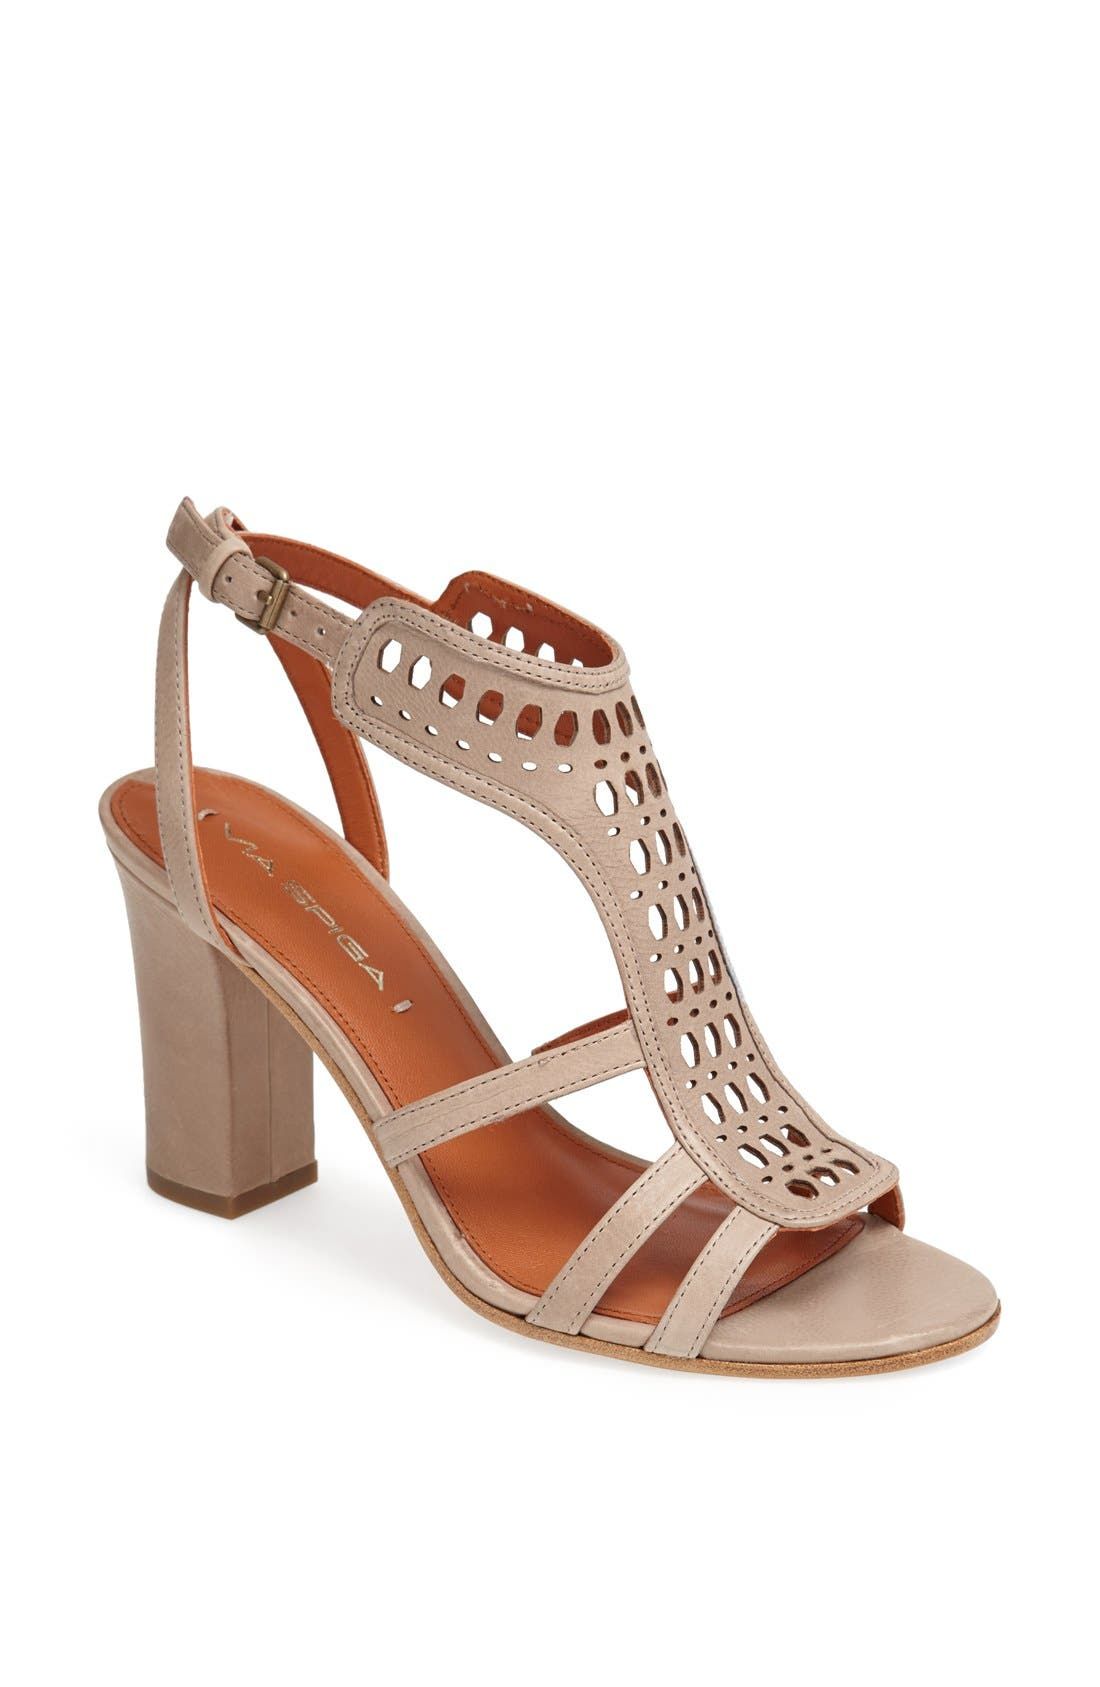 Alternate Image 1 Selected - Via Spiga 'Fala' Sandal